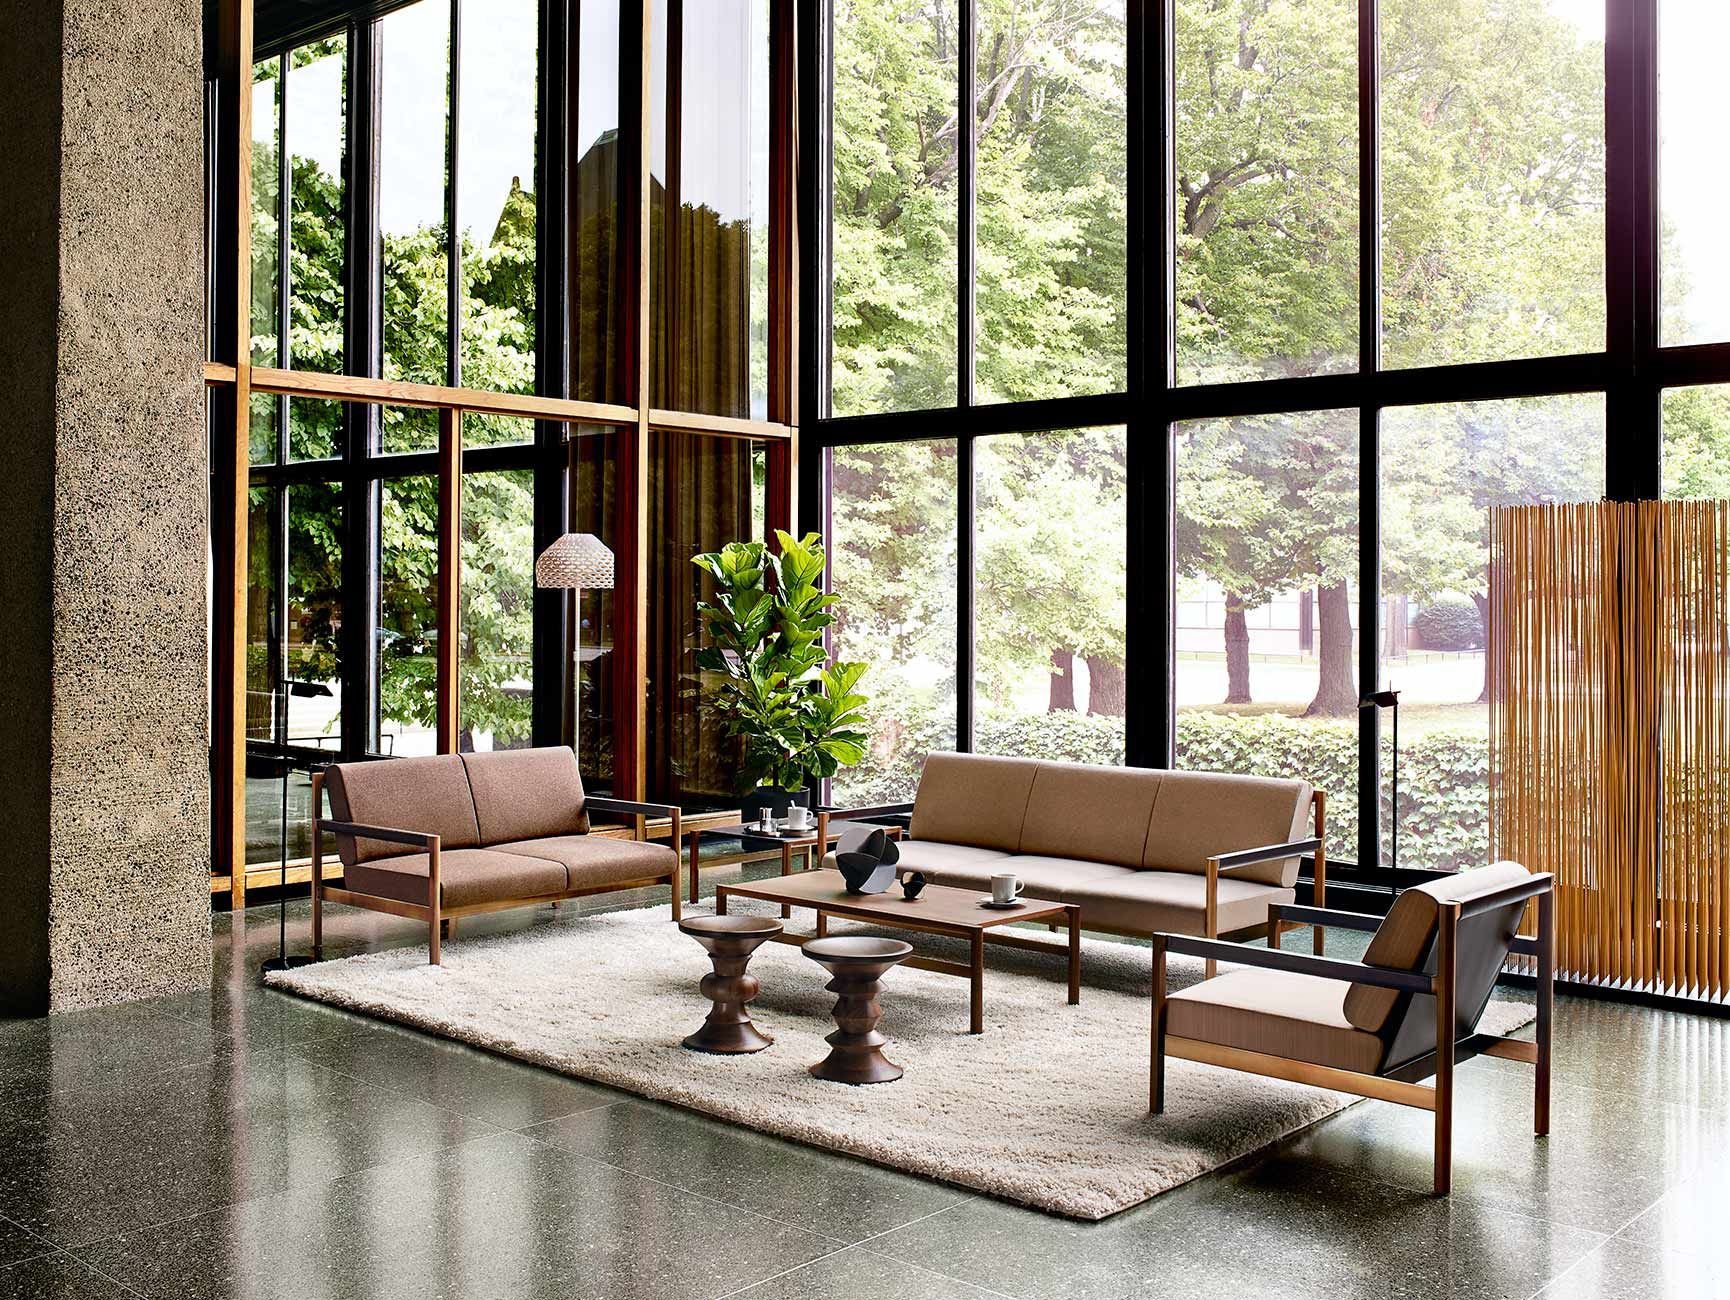 Family room herman miller eames chairs - Herman Miller Collection Brabo Lounge Family Eames Walnut Stools